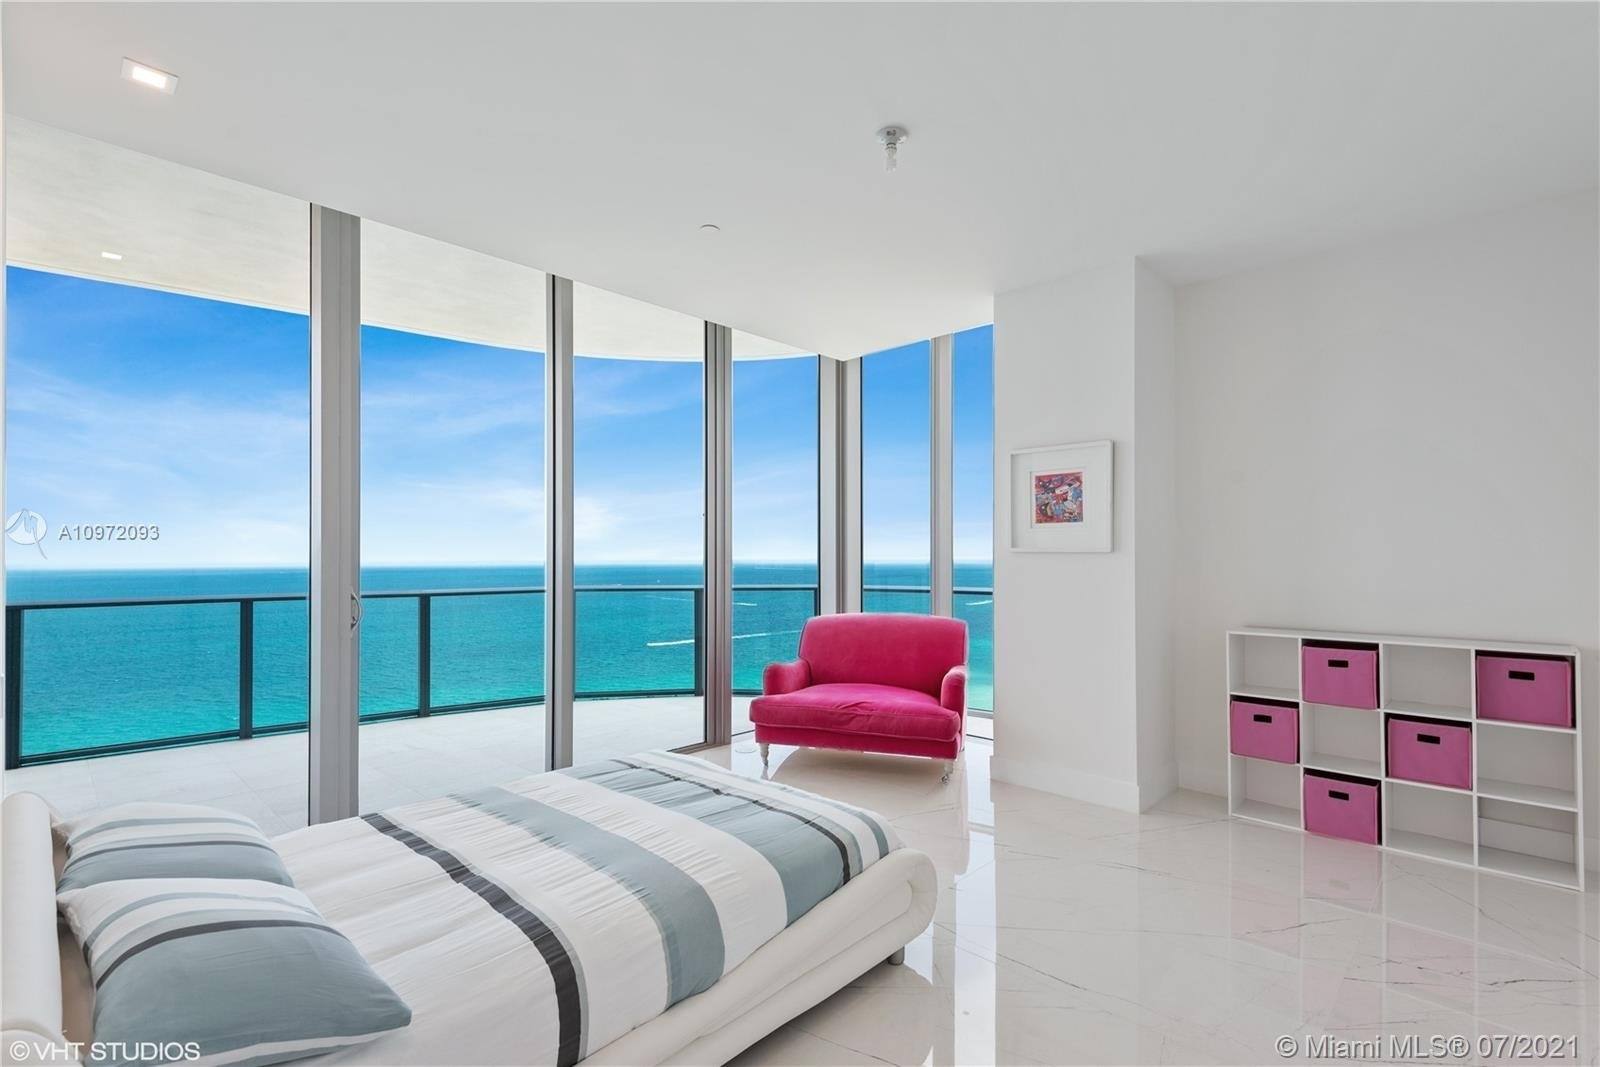 25. Condominiums for Sale at 17475 Collins Ave , 1501 Sunny Isles Beach, FL 33160